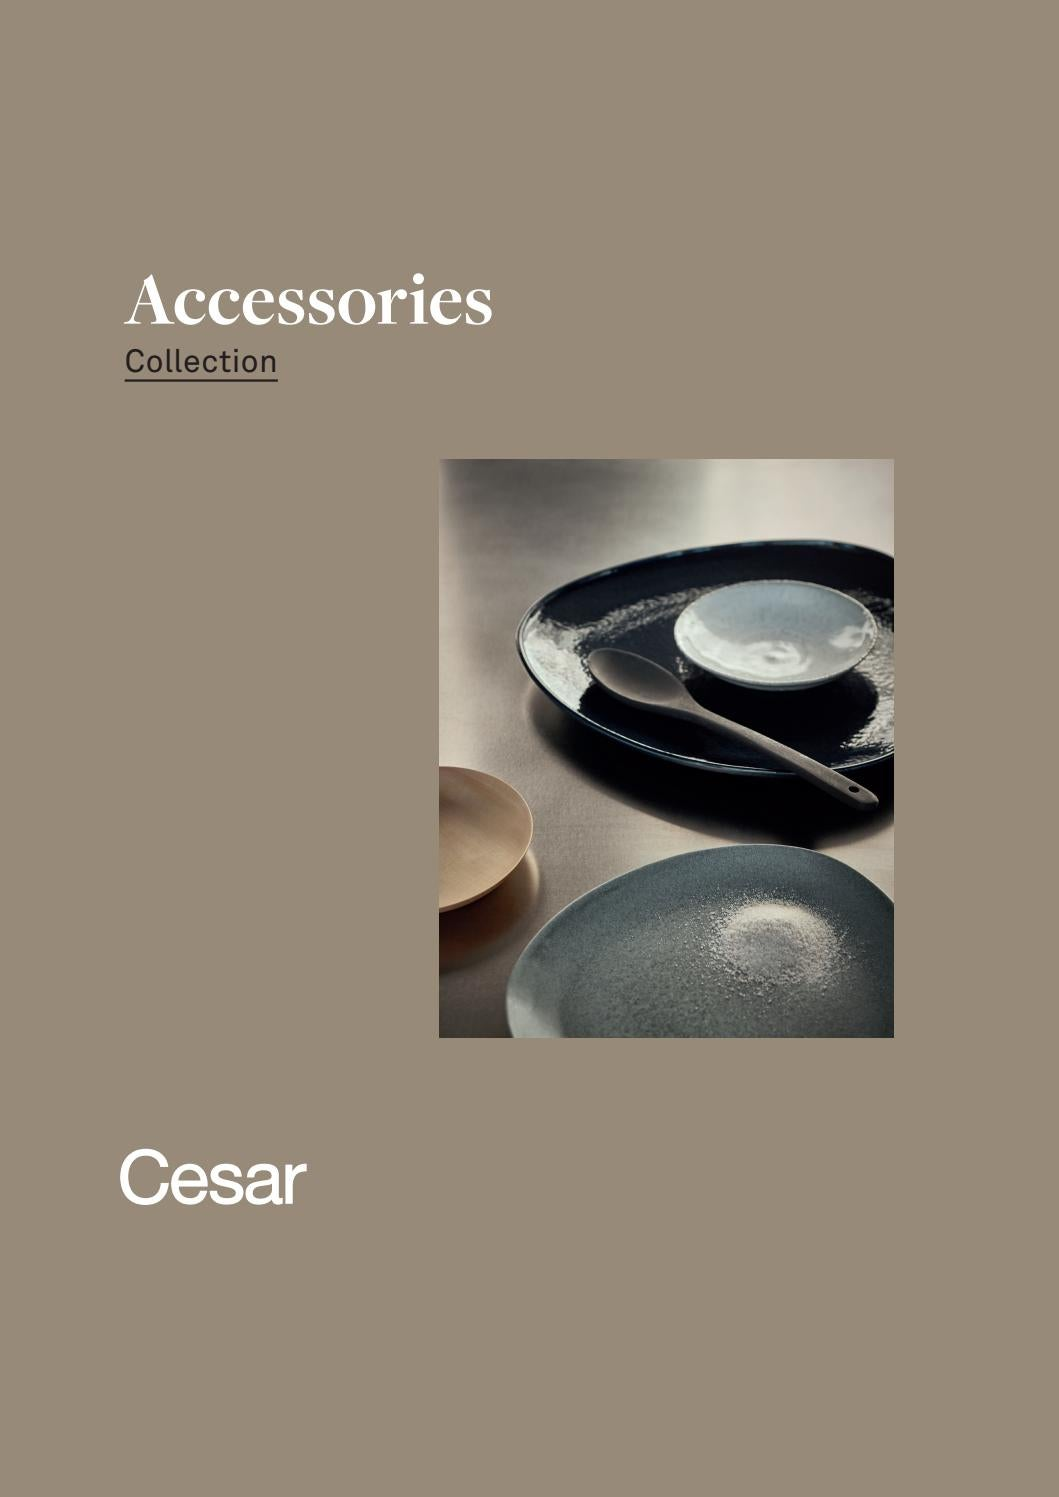 Pattumiera Per Cestone Sottolavello accessories collection by cesar - issuu